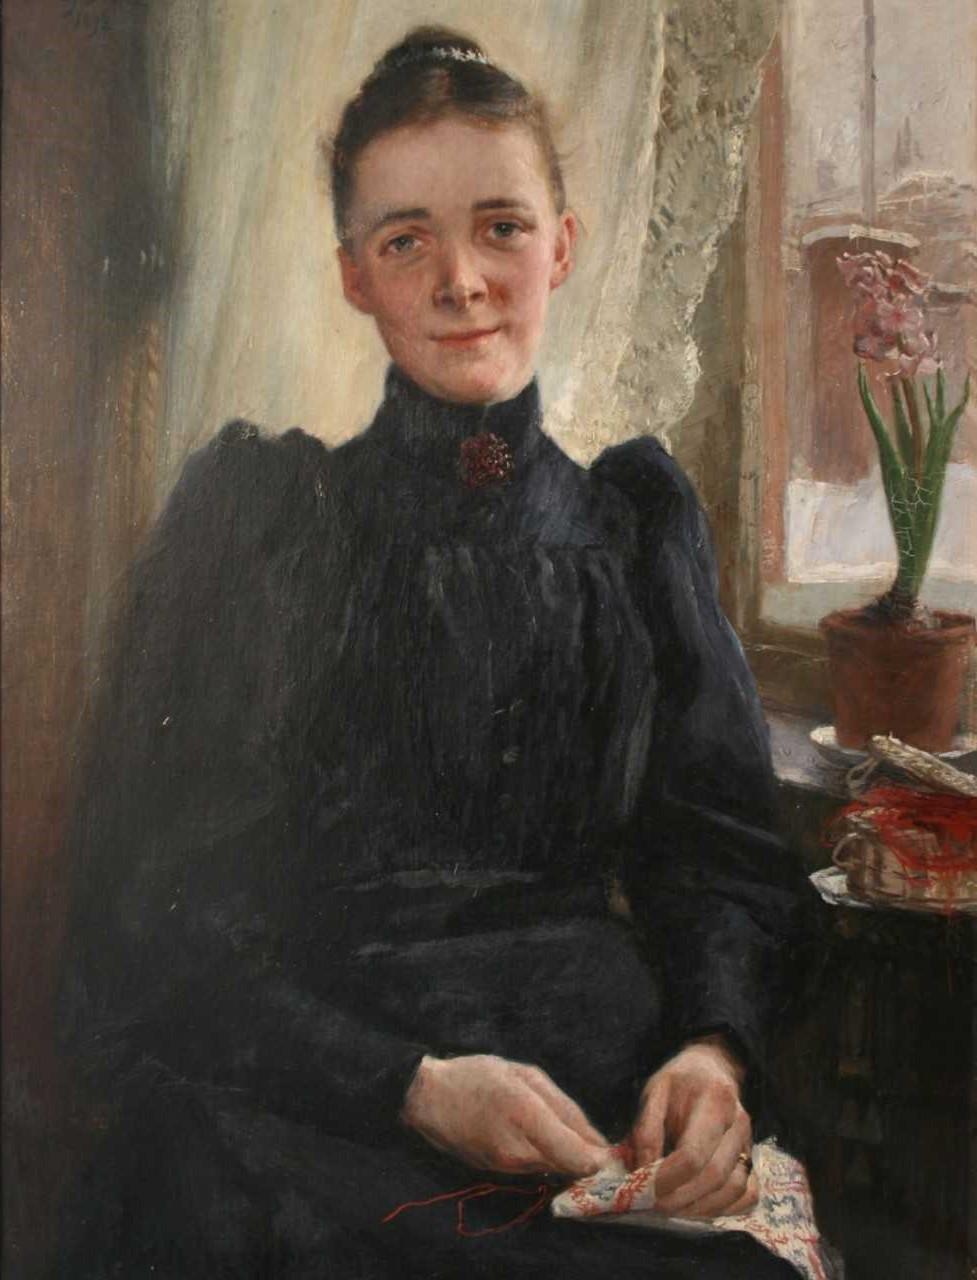 Nina Benner-Anderson. Portrait by Fanny Brate, spring of 1893. In the possession of the Benner family. Photo: Johan Andersson